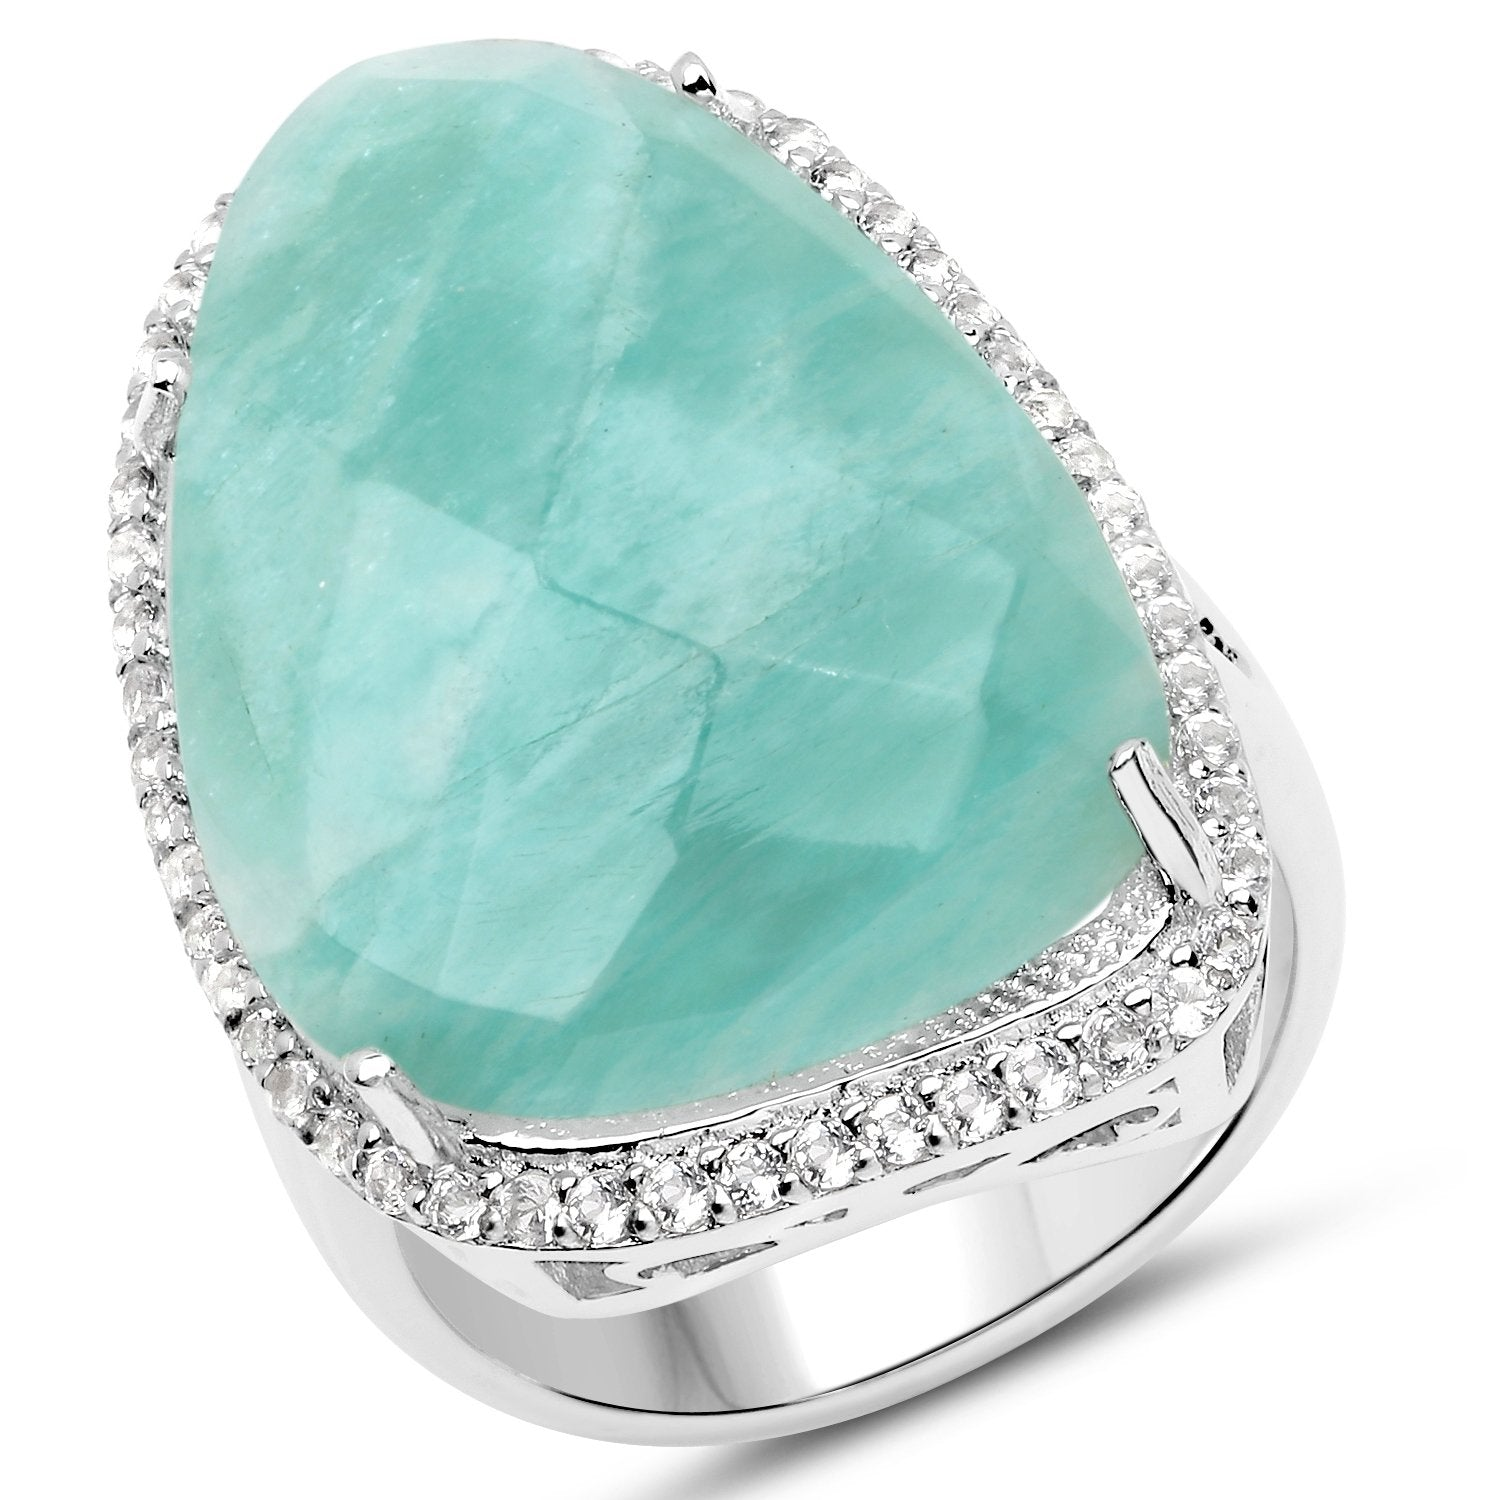 LoveHuang 23.71 Carats Genuine Amazonite and White Topaz Statement Ring Solid .925 Sterling Silver With Rhodium Plating